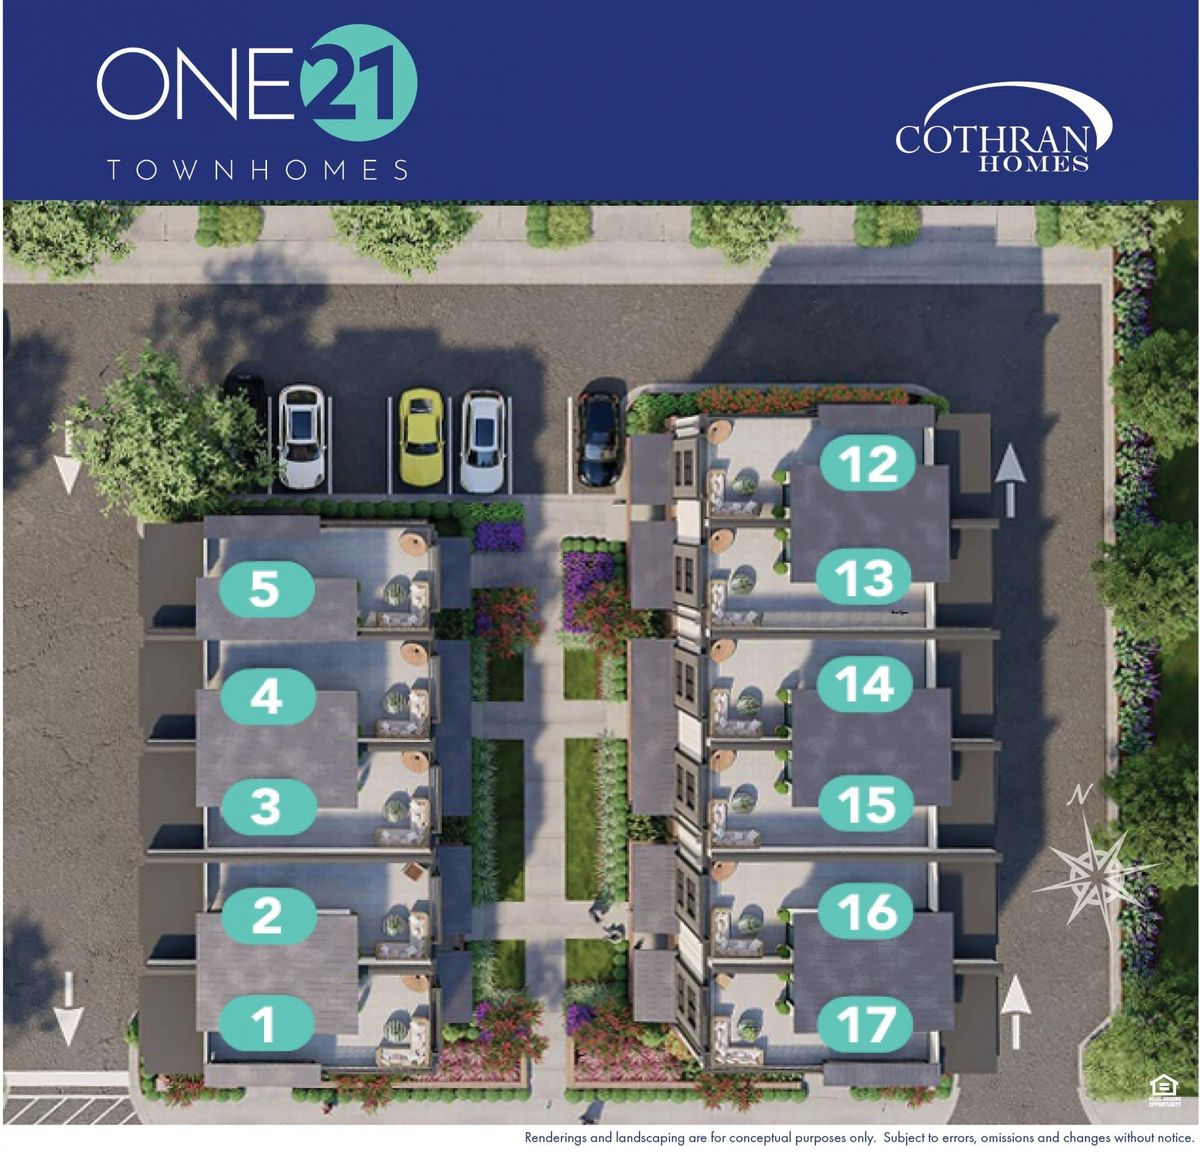 One21 Townhomes